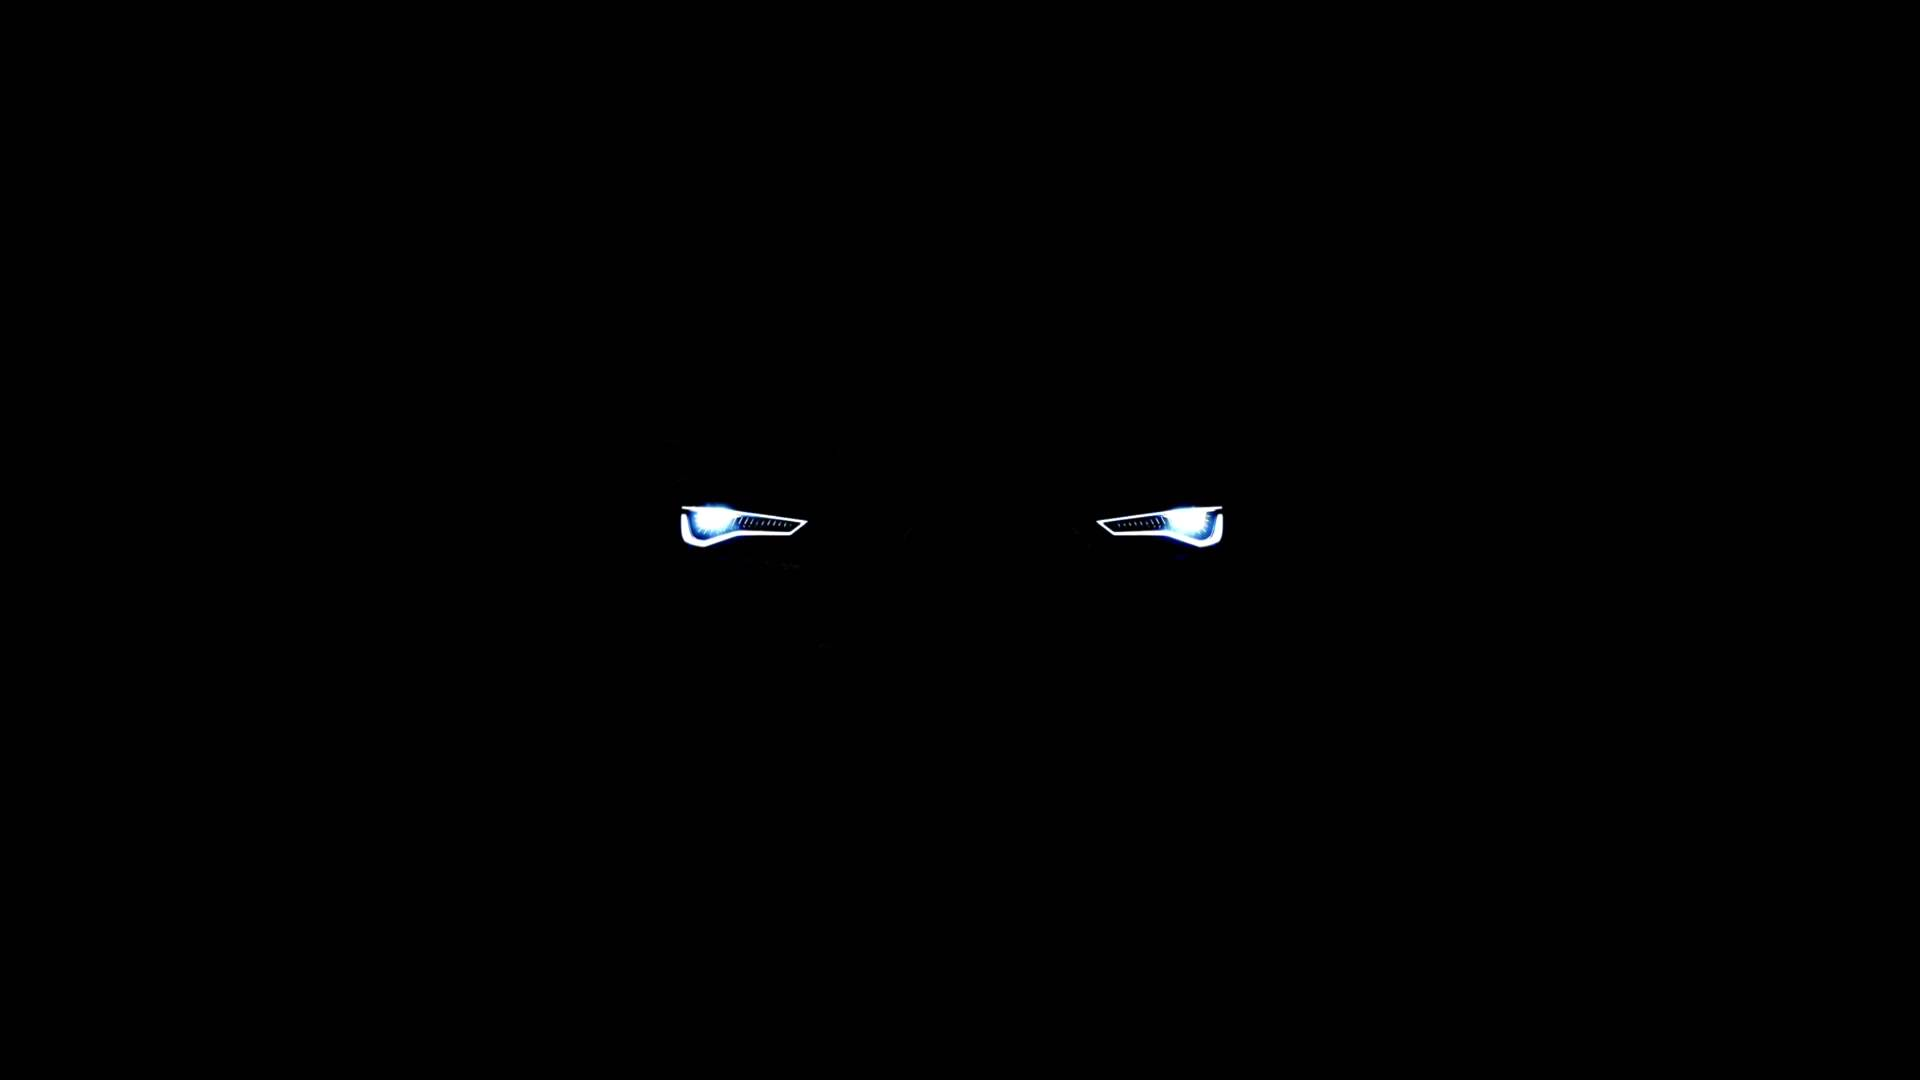 Audi Headlights Wallpapers Wallpaper Cave